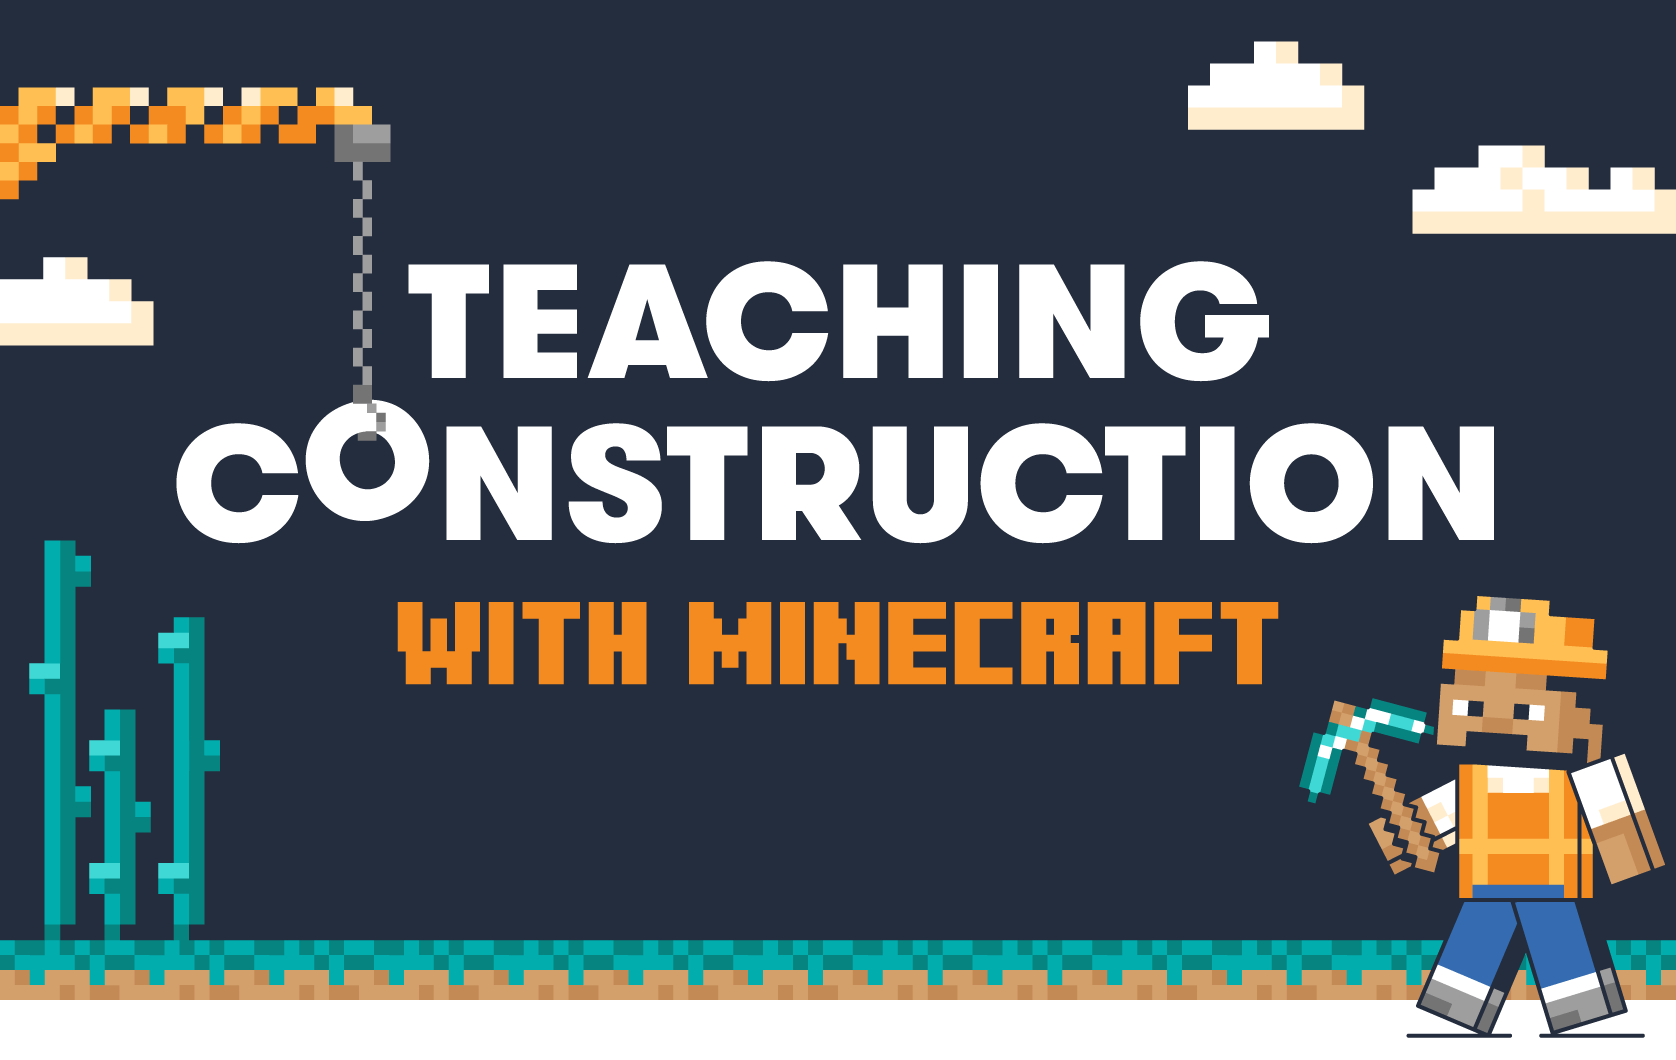 Teaching Construction With Minecraft